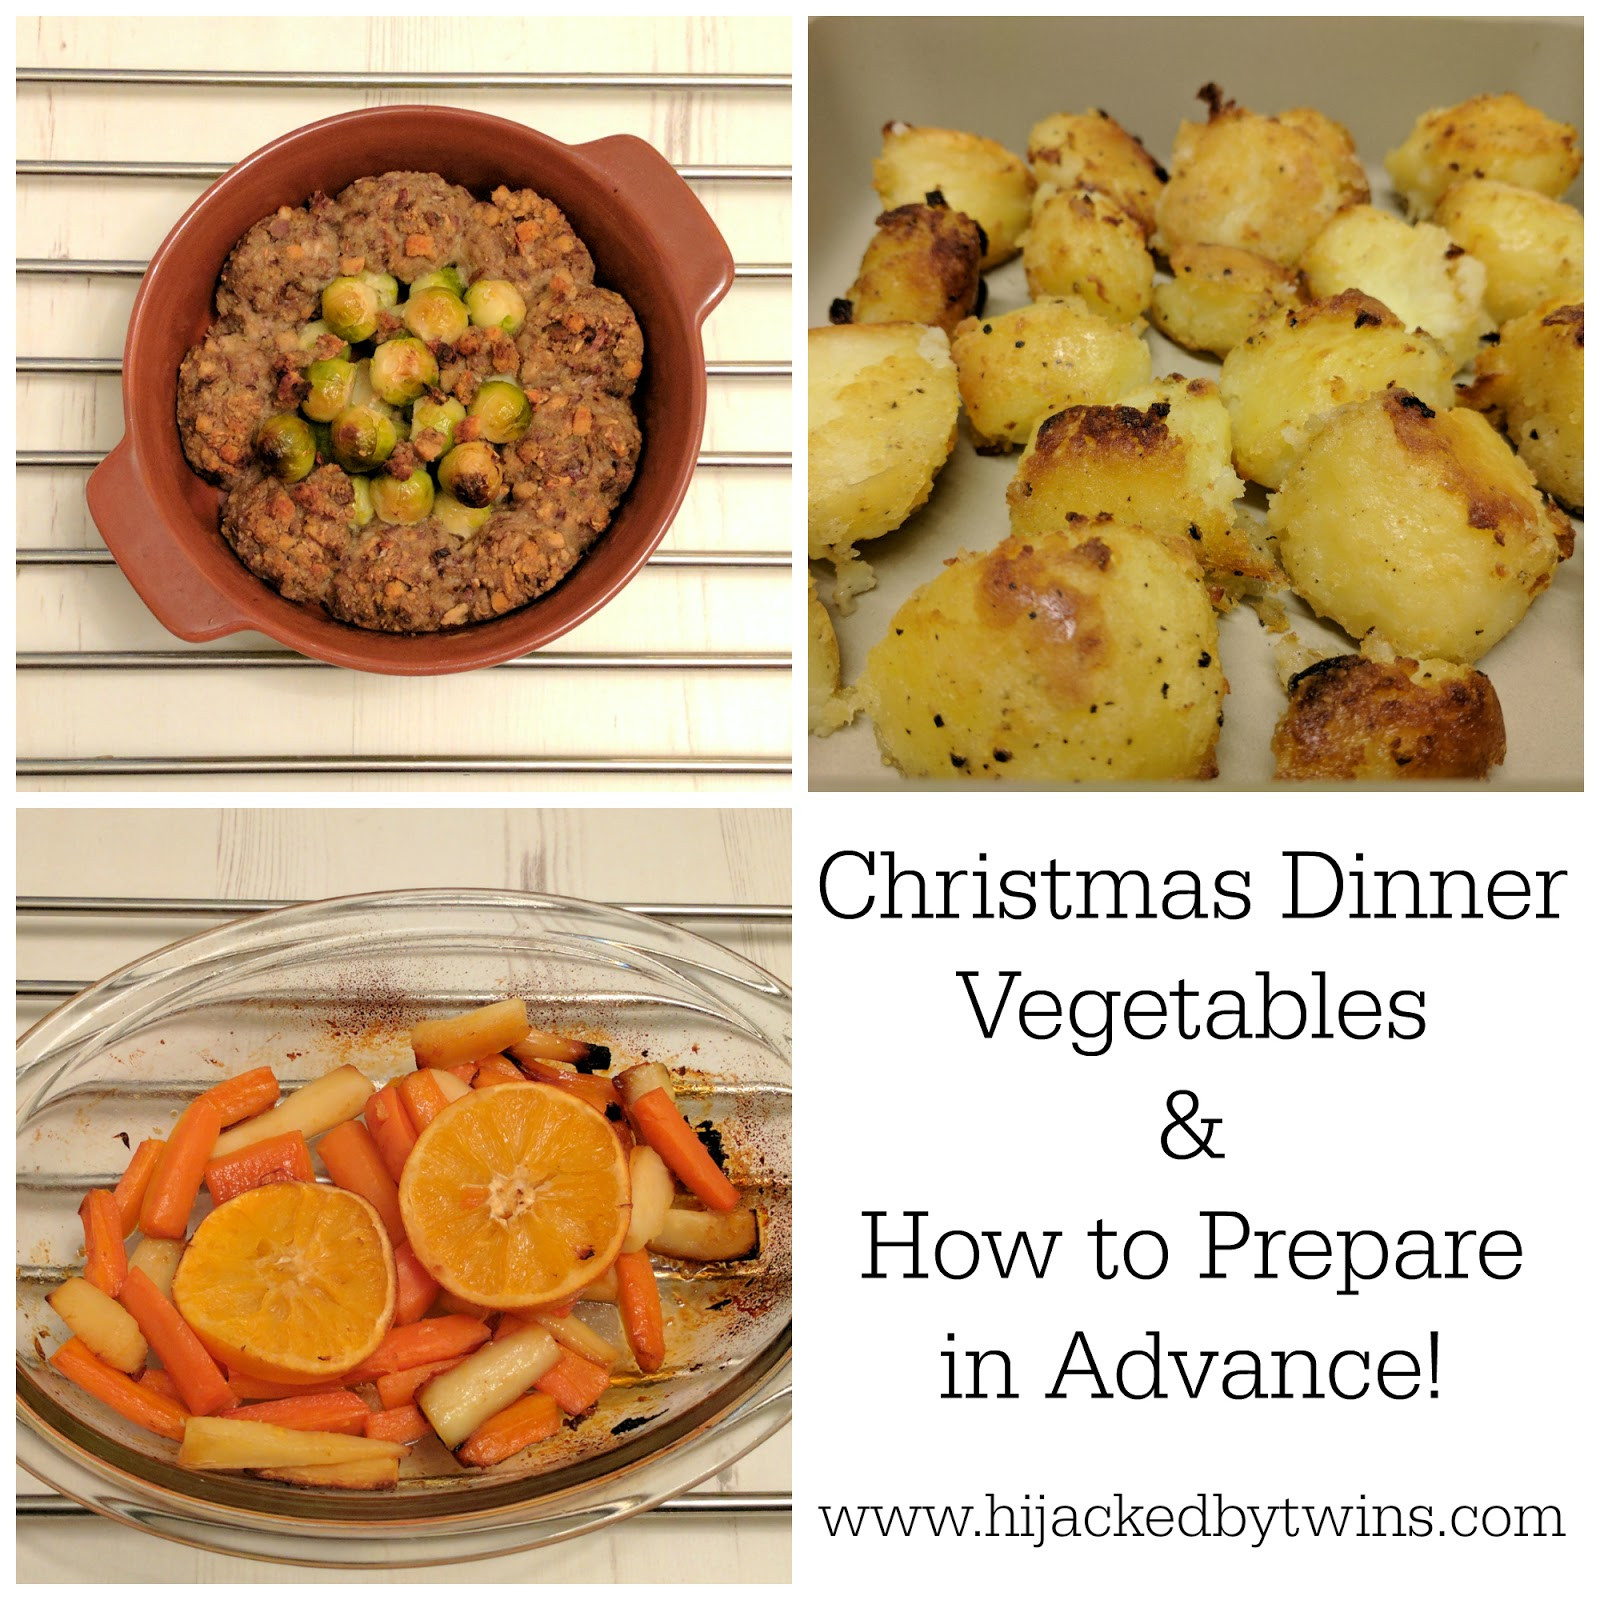 Christmas Dinner Vegetables  Hijacked By Twins Christmas Dinner Ve ables from Aldi